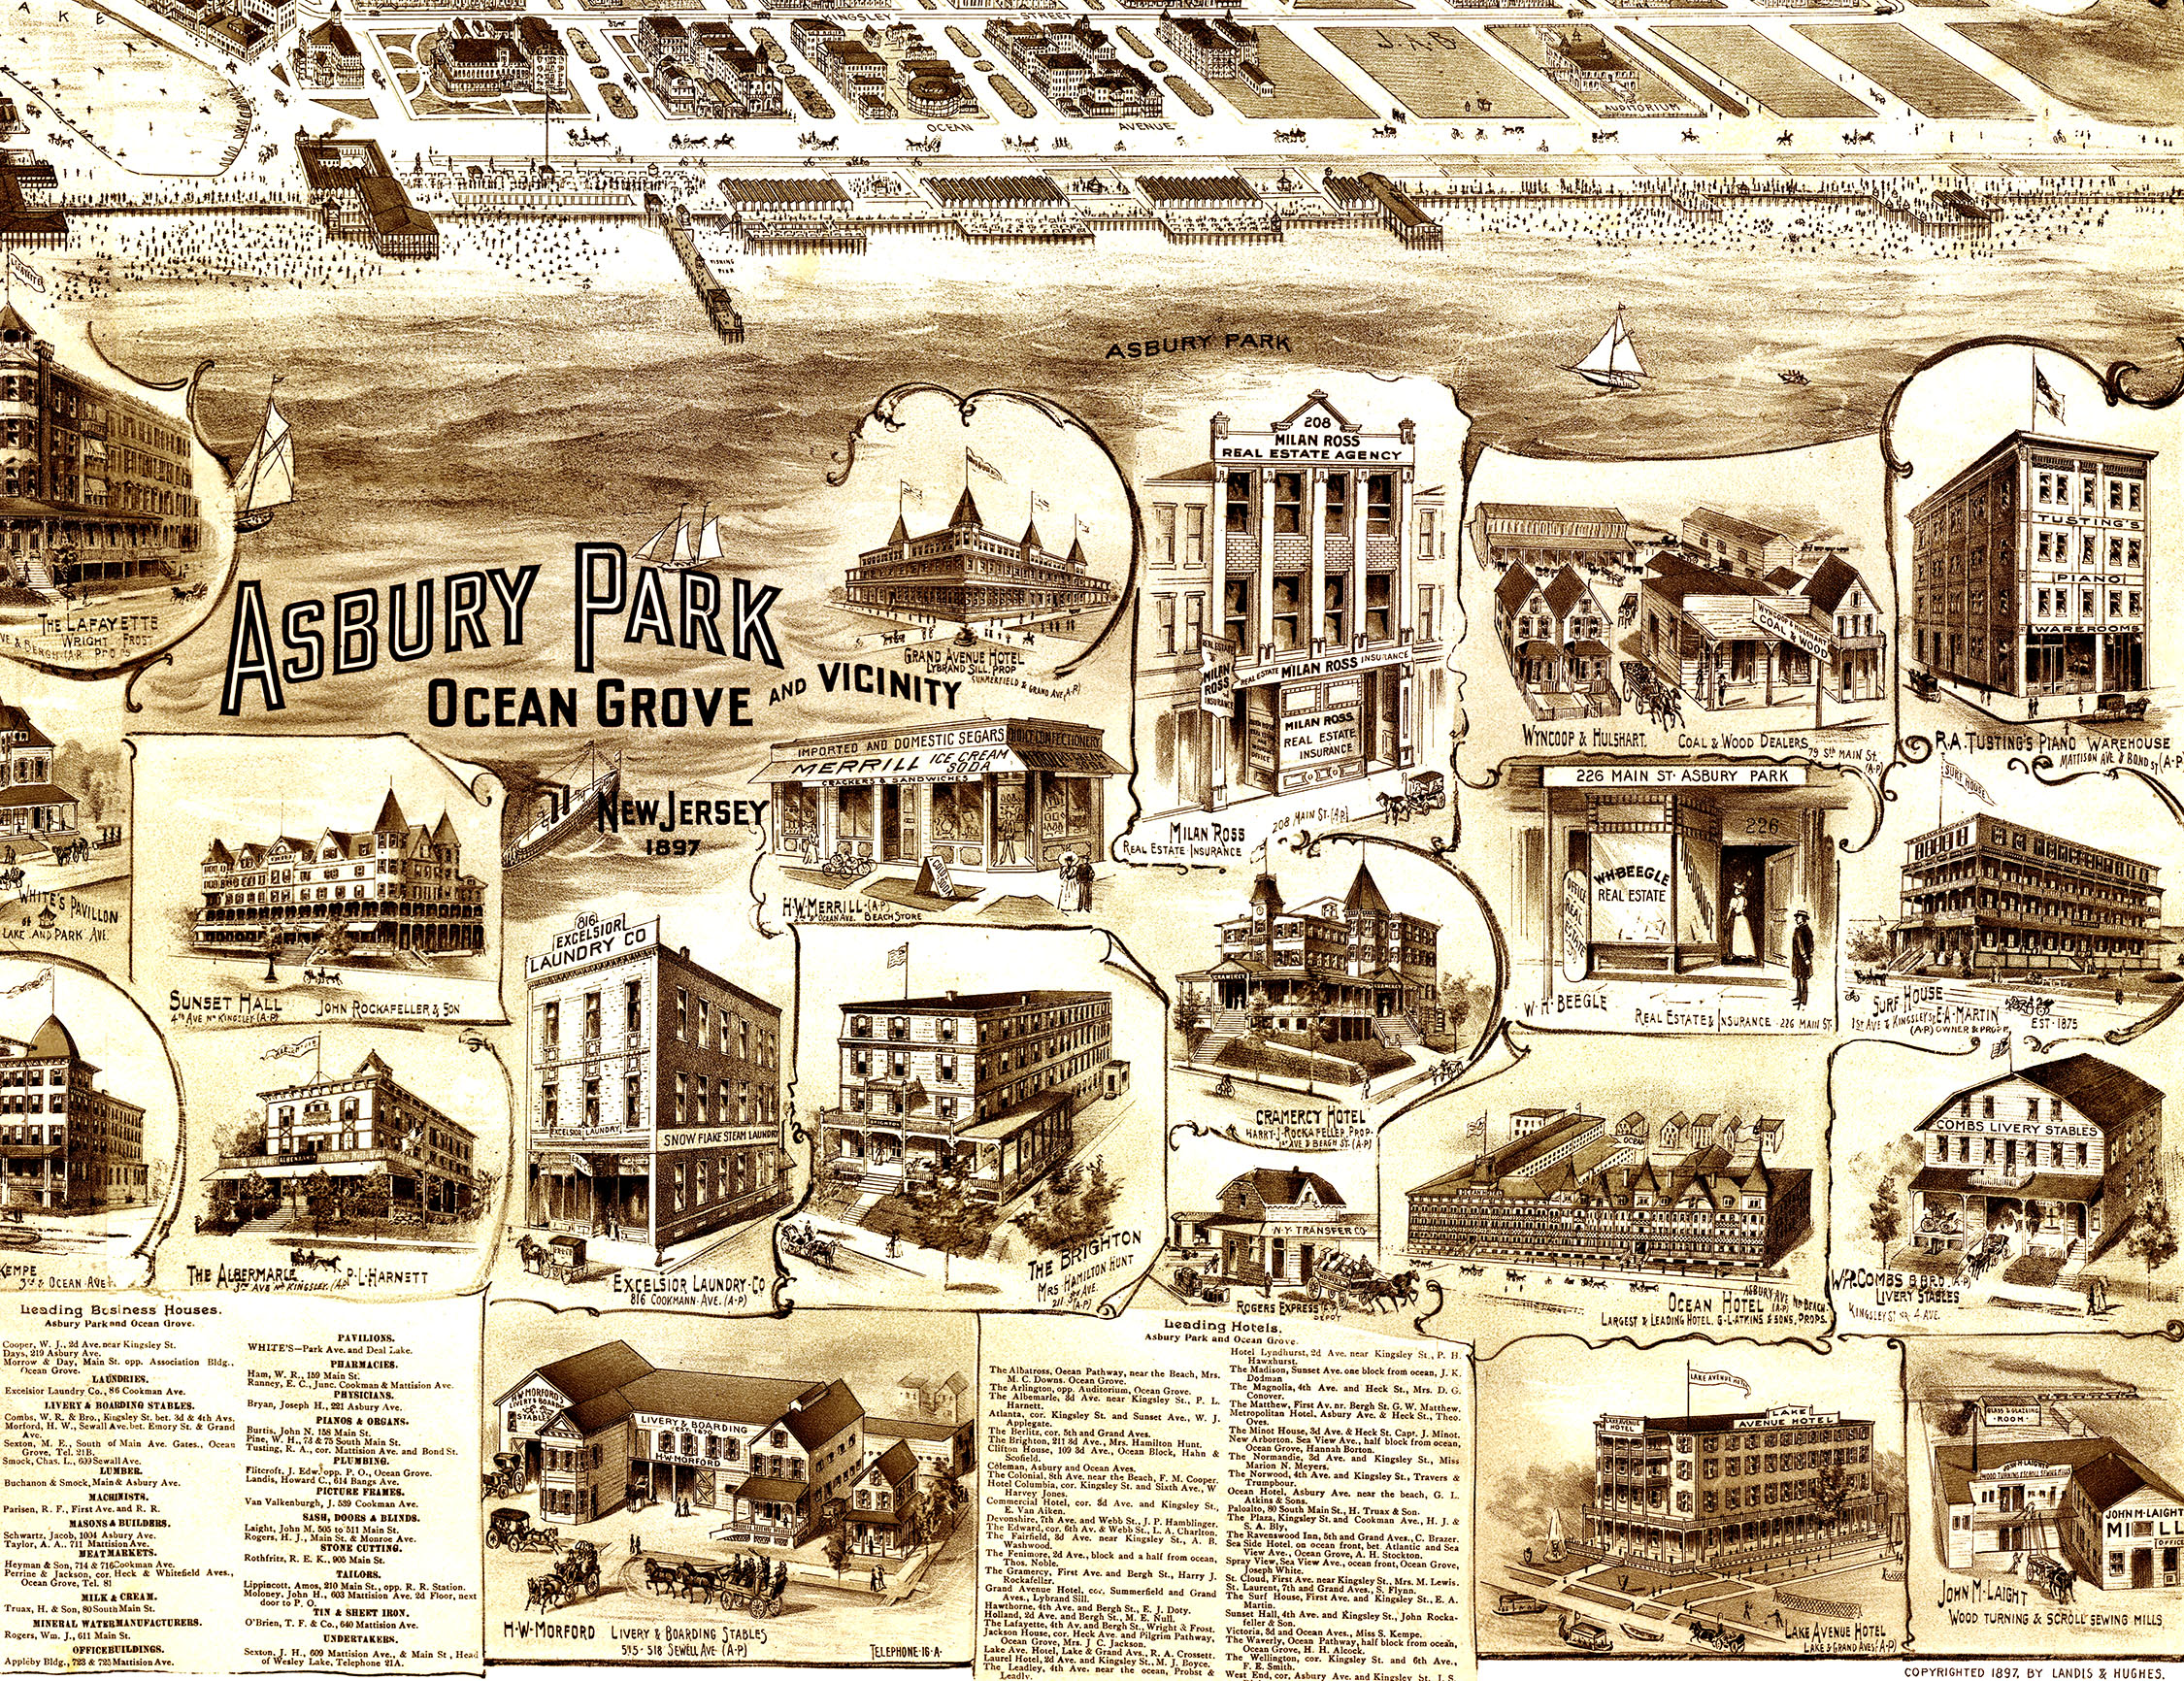 Asbury Park, Ocean Grove, New Jersey and Vicinity in 1897 - Bird's Eye  View, Map, Aerial, Panorama, Vintage, Antique, Fine Art, Wall art from The  Old